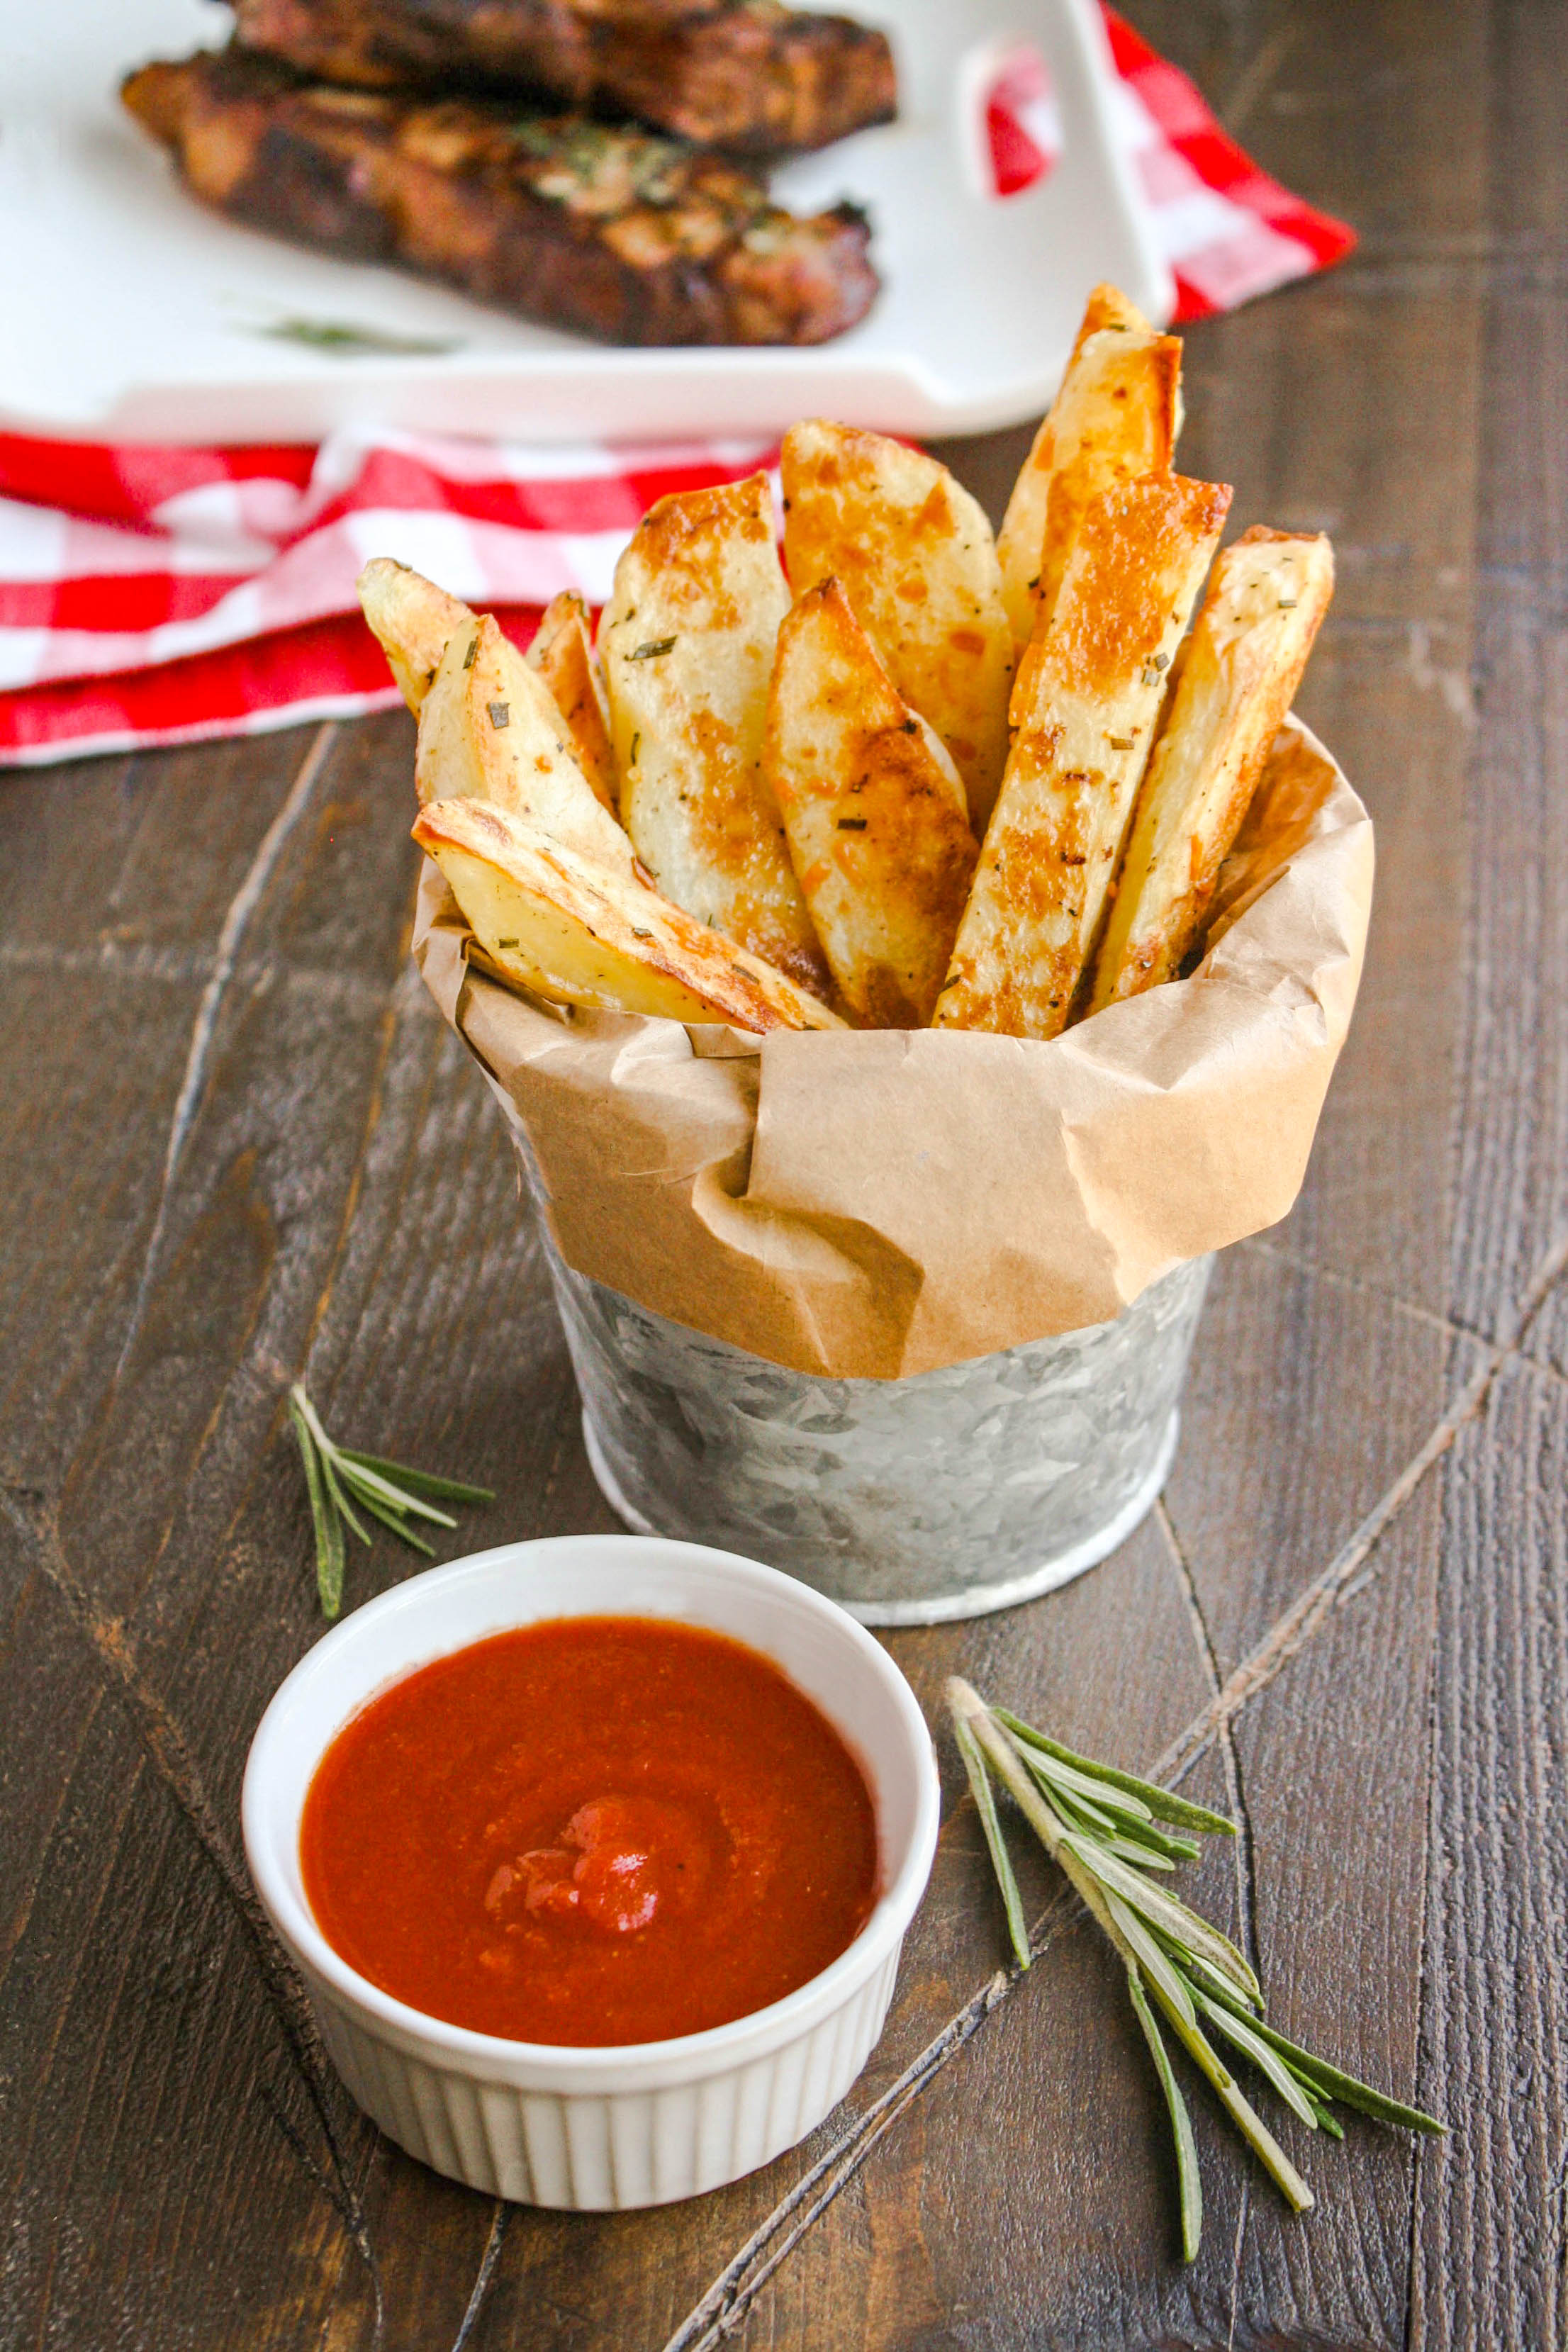 Oven Baked Rosemary Steak Fries Homemade Ketchup make a great side dish. You'll love their crispiness.